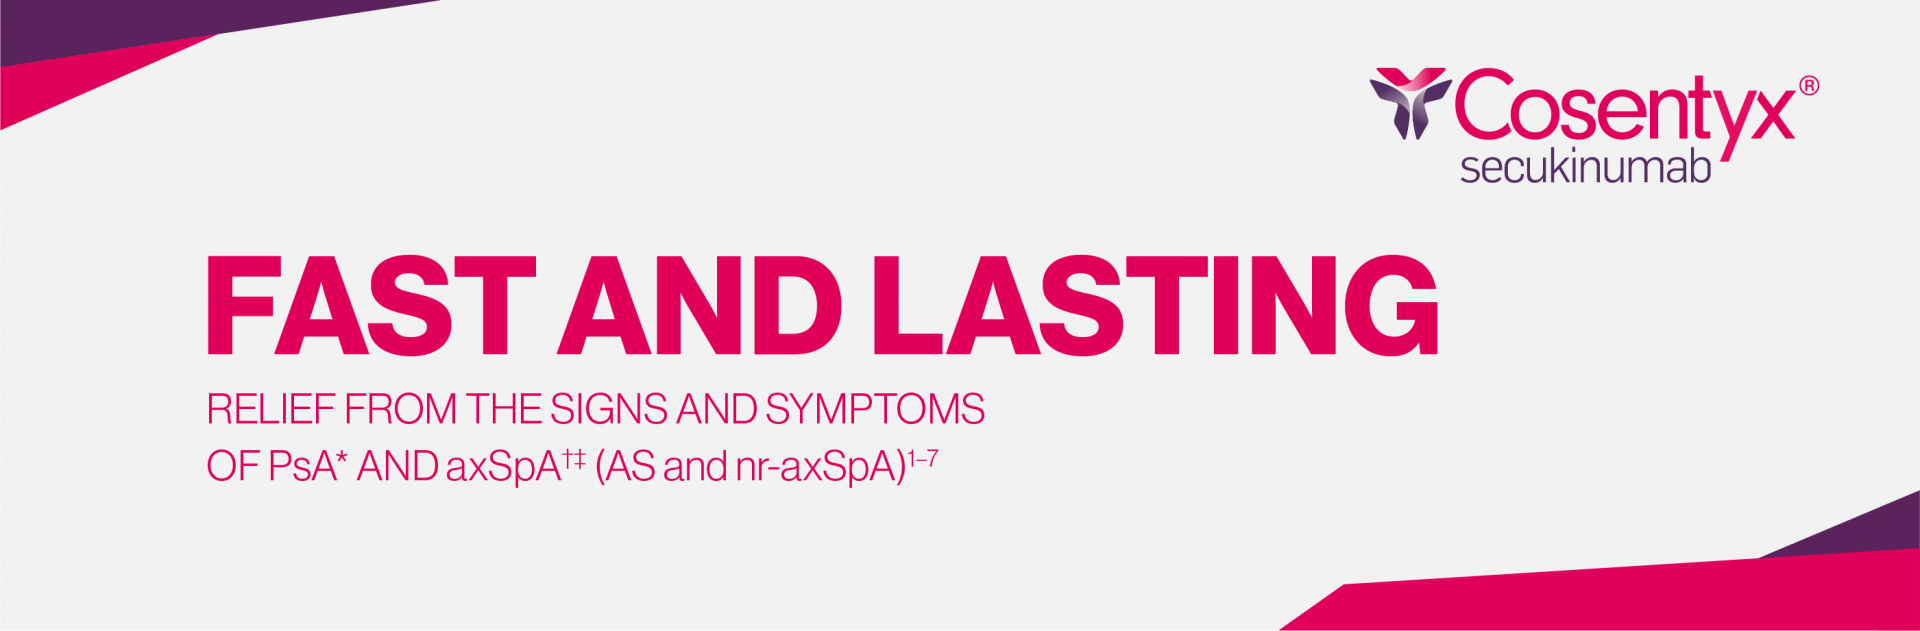 Top banner. FAST AND LASTING RELIEF FROM THE SIGNS AND SYMPTOMS OF PsA AND axSpA (AS and nr-axSpA)1-7